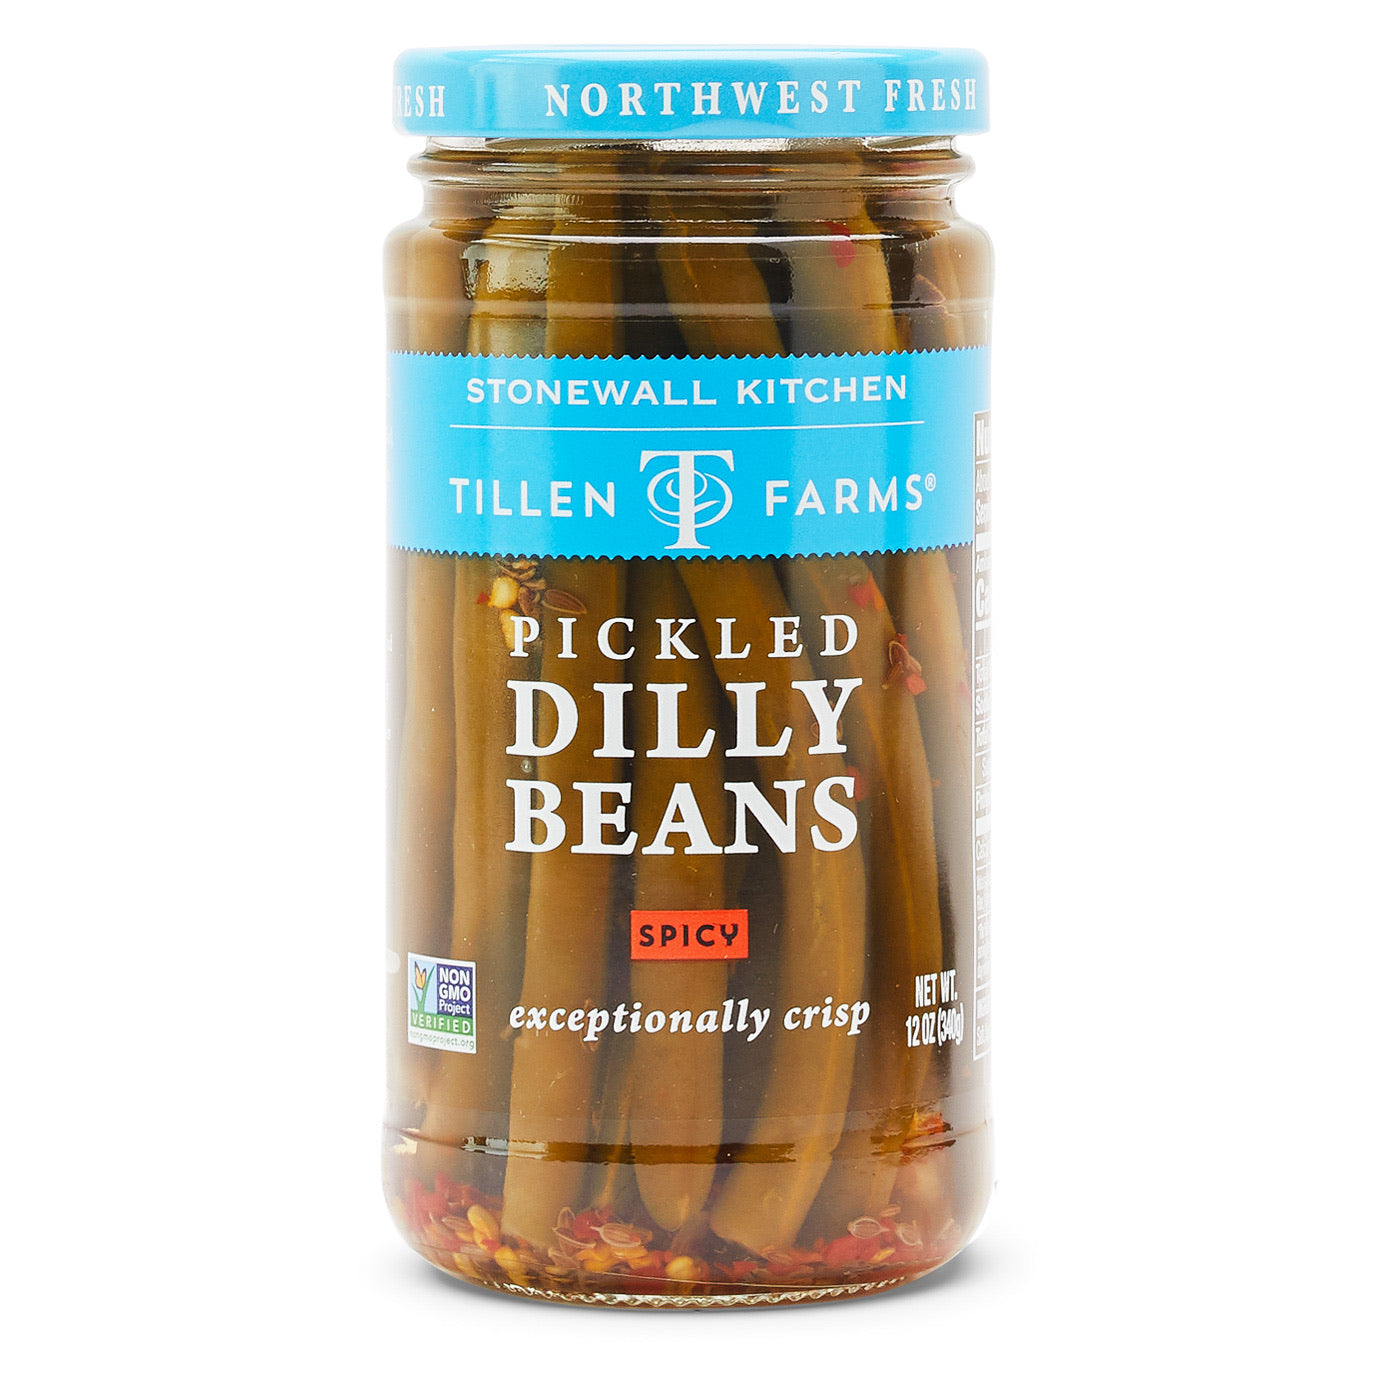 Stonewall Kitchen - Spicy Pickled Dilly Beans 375mL